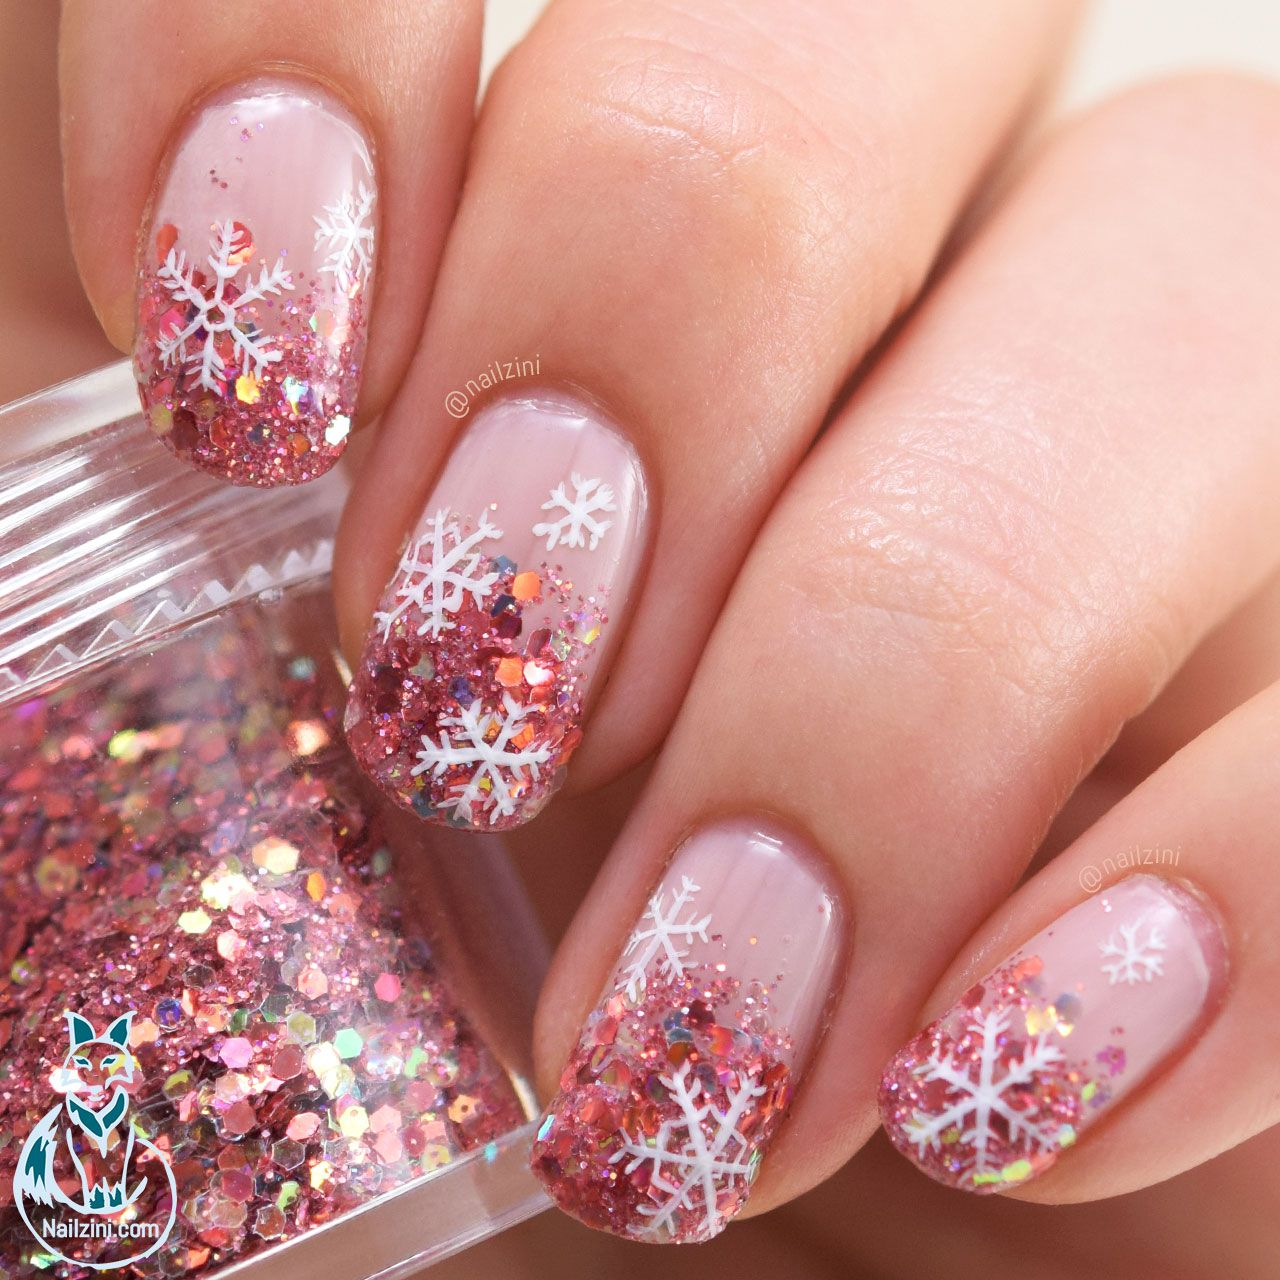 Rose gold glitter with snowflakes nails